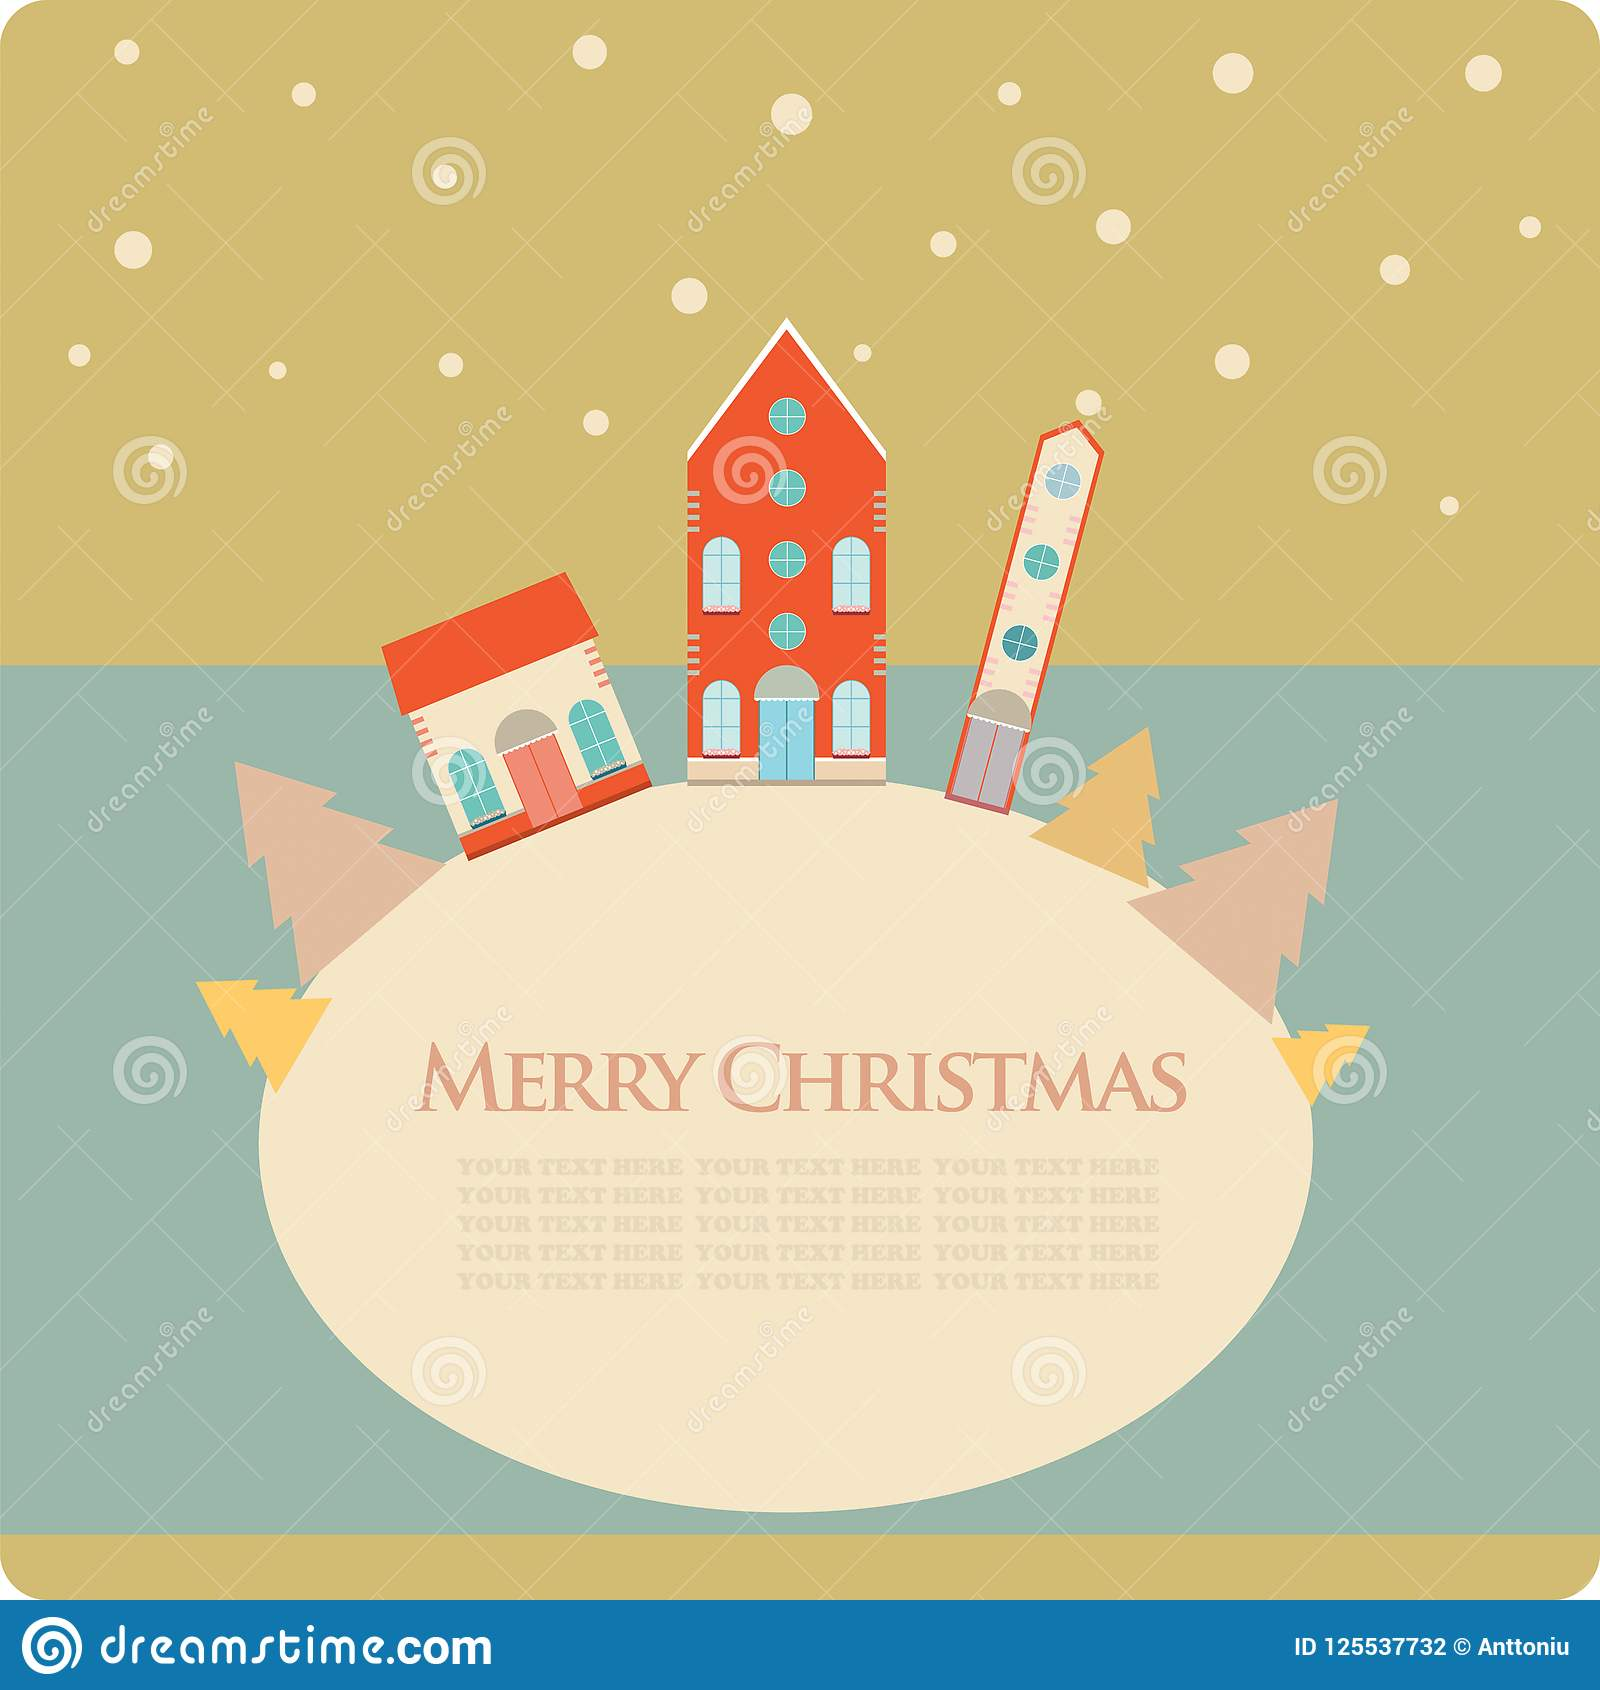 christmas new year greeting card with street view with lovely houses in small townwinter season snowingthemebannerpostcardstickerposter design